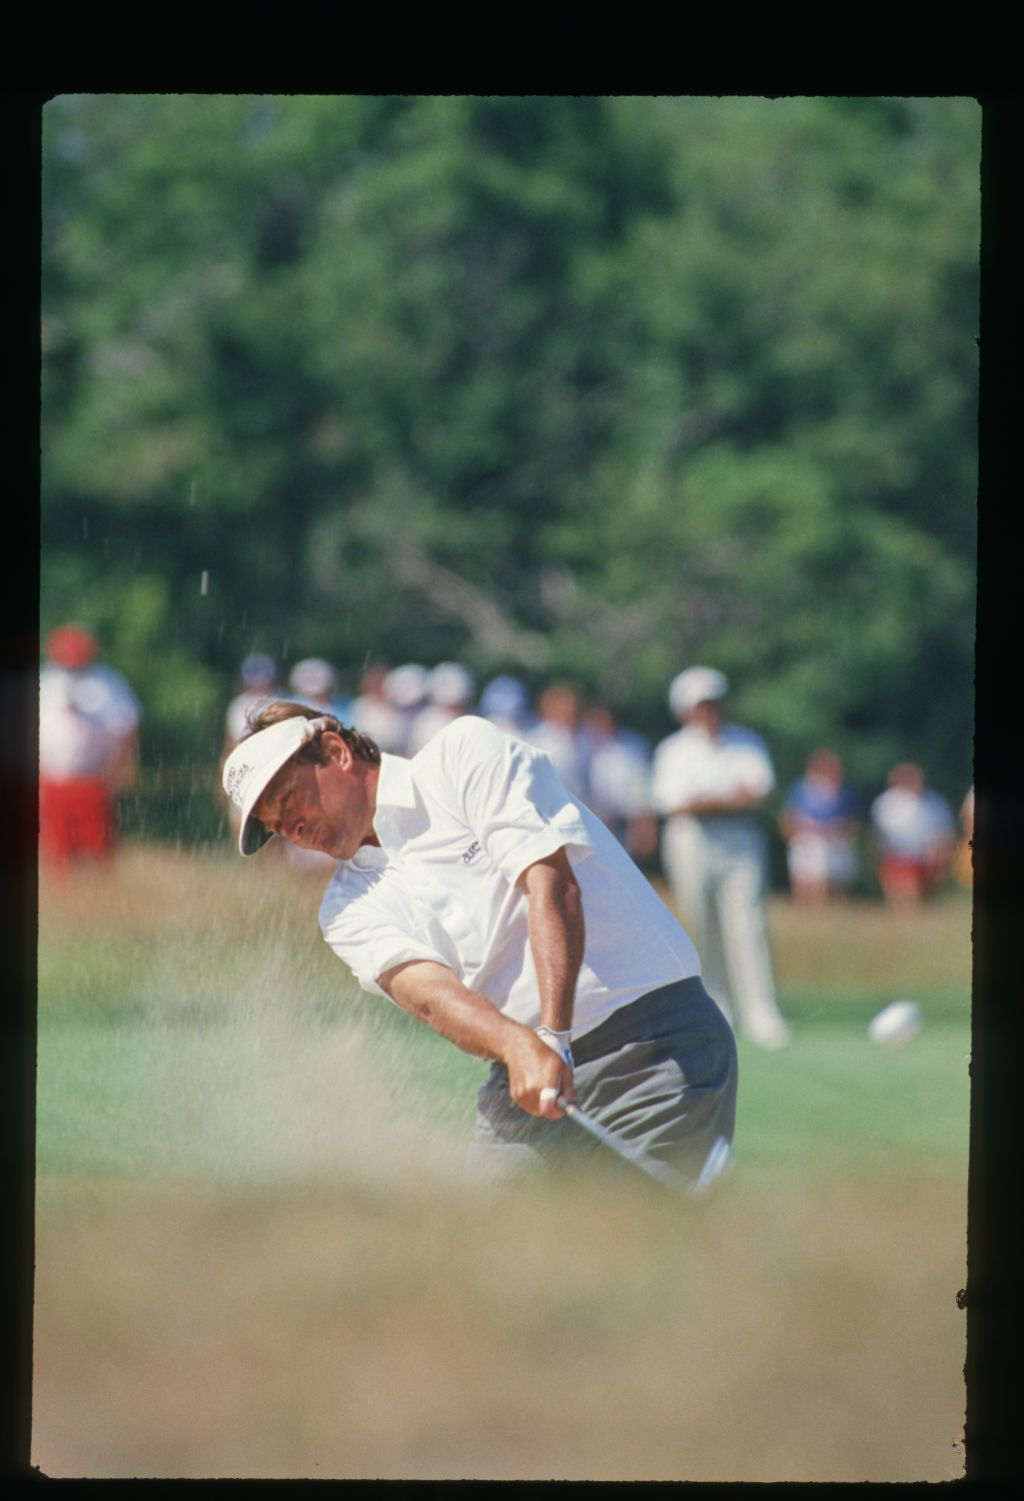 Golfer Ray Floyd blasts his ball out of the bunker at the 1986 United States Open Championship